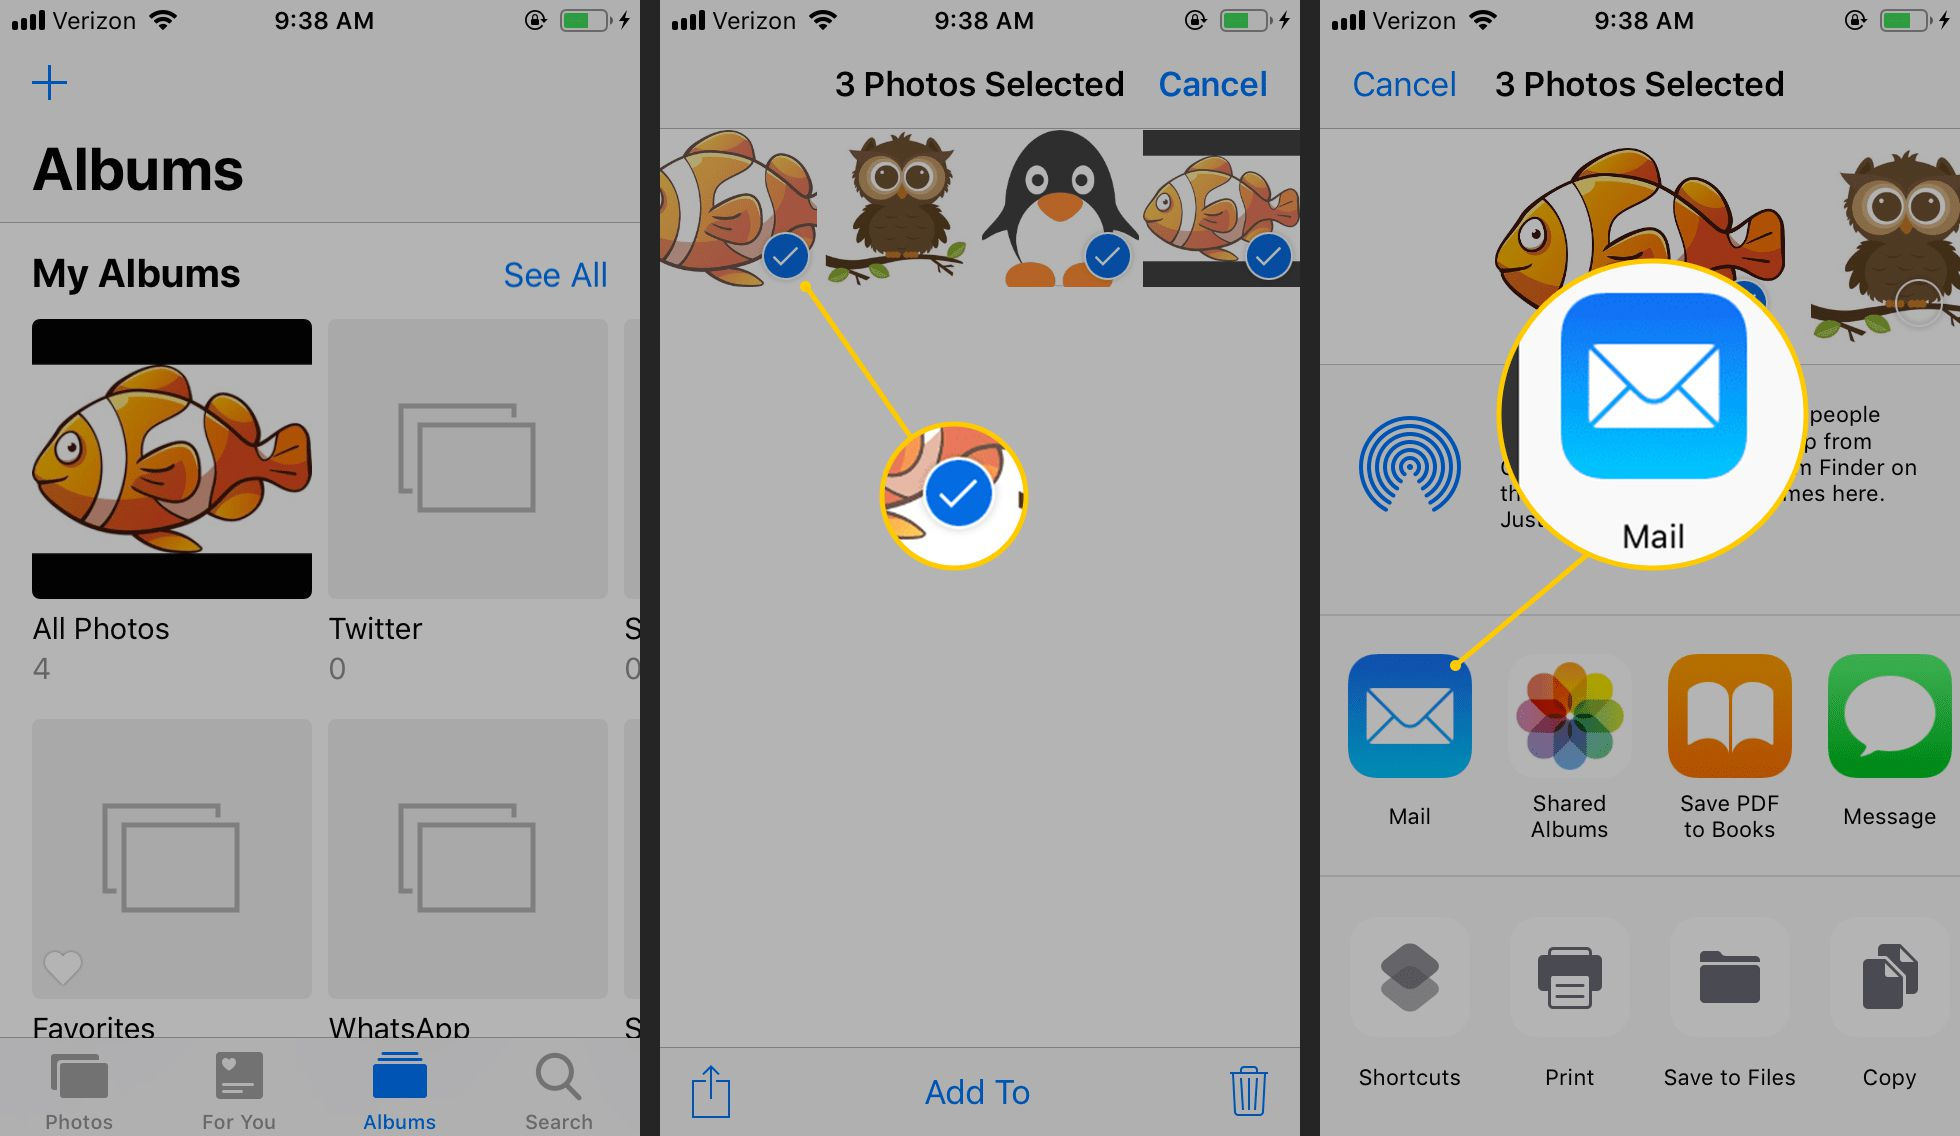 How to Send Images With iPhone Mail